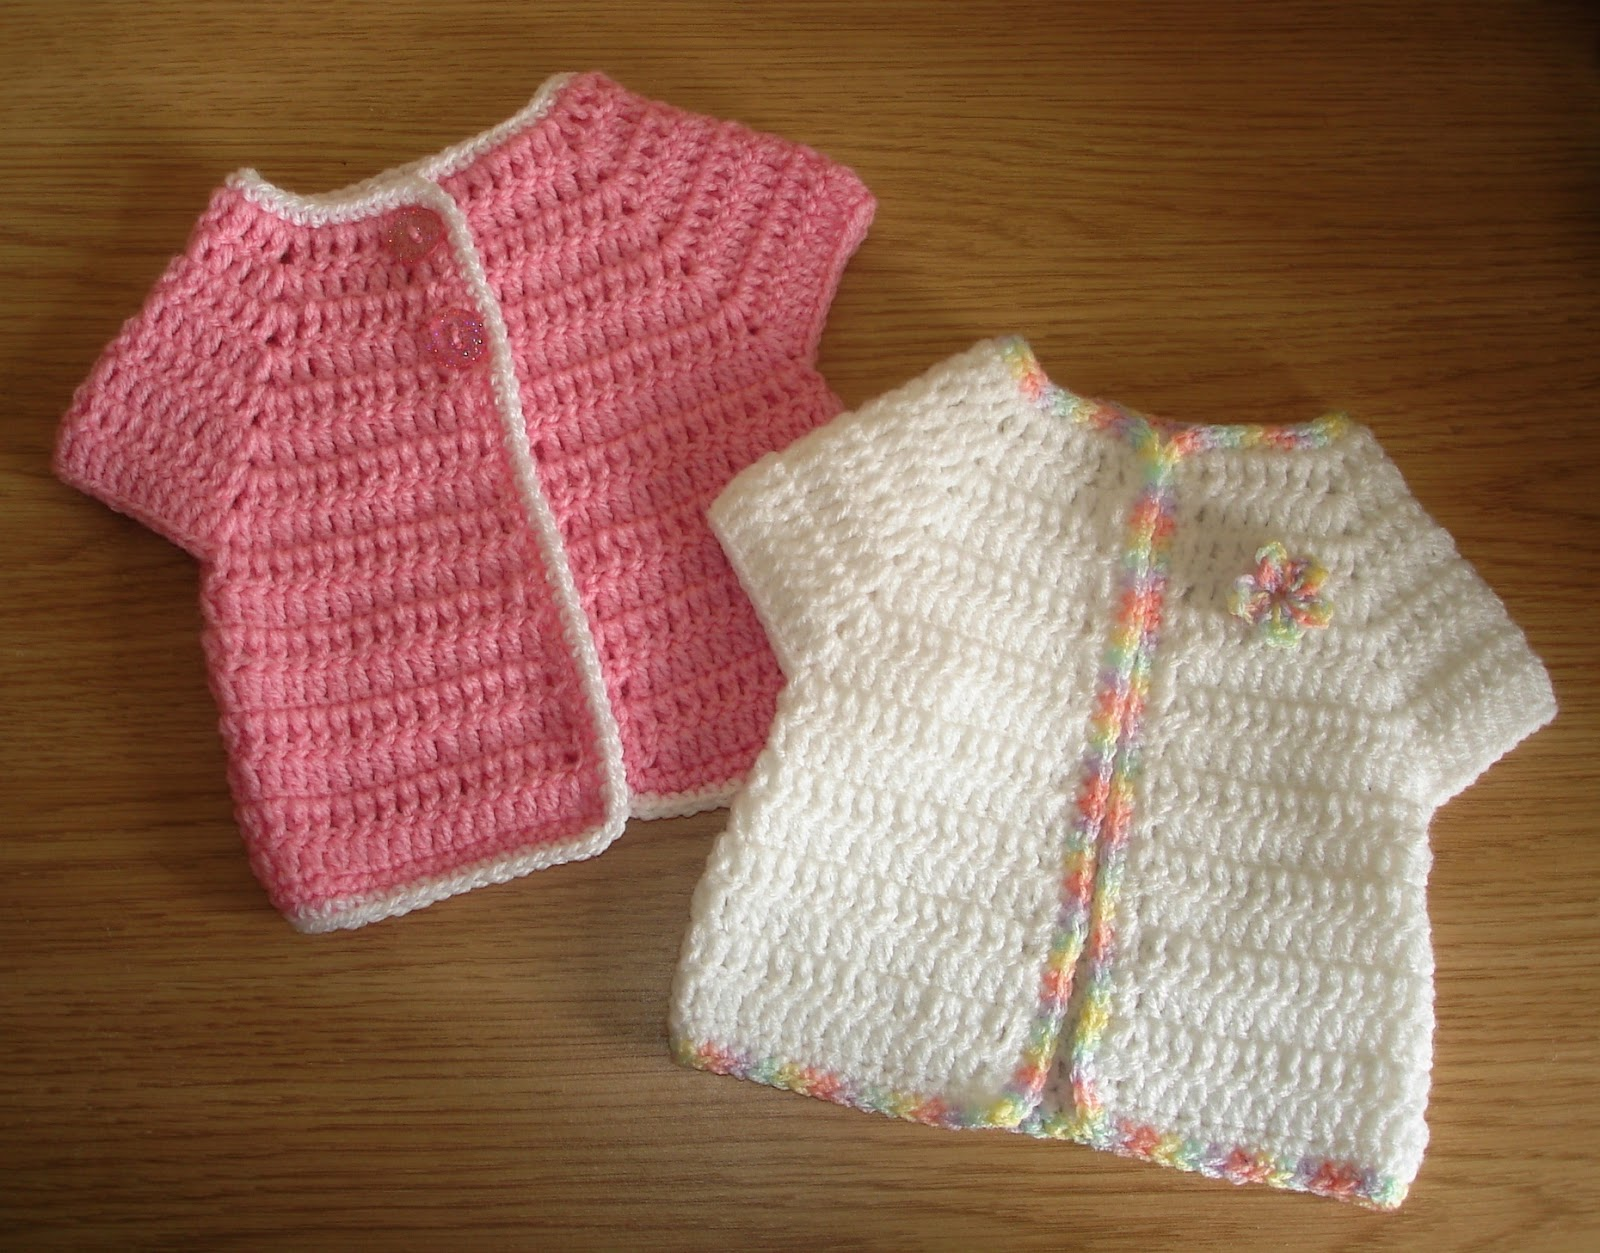 mariannas lazy daisy days: Cute Crochet Baby Cardi